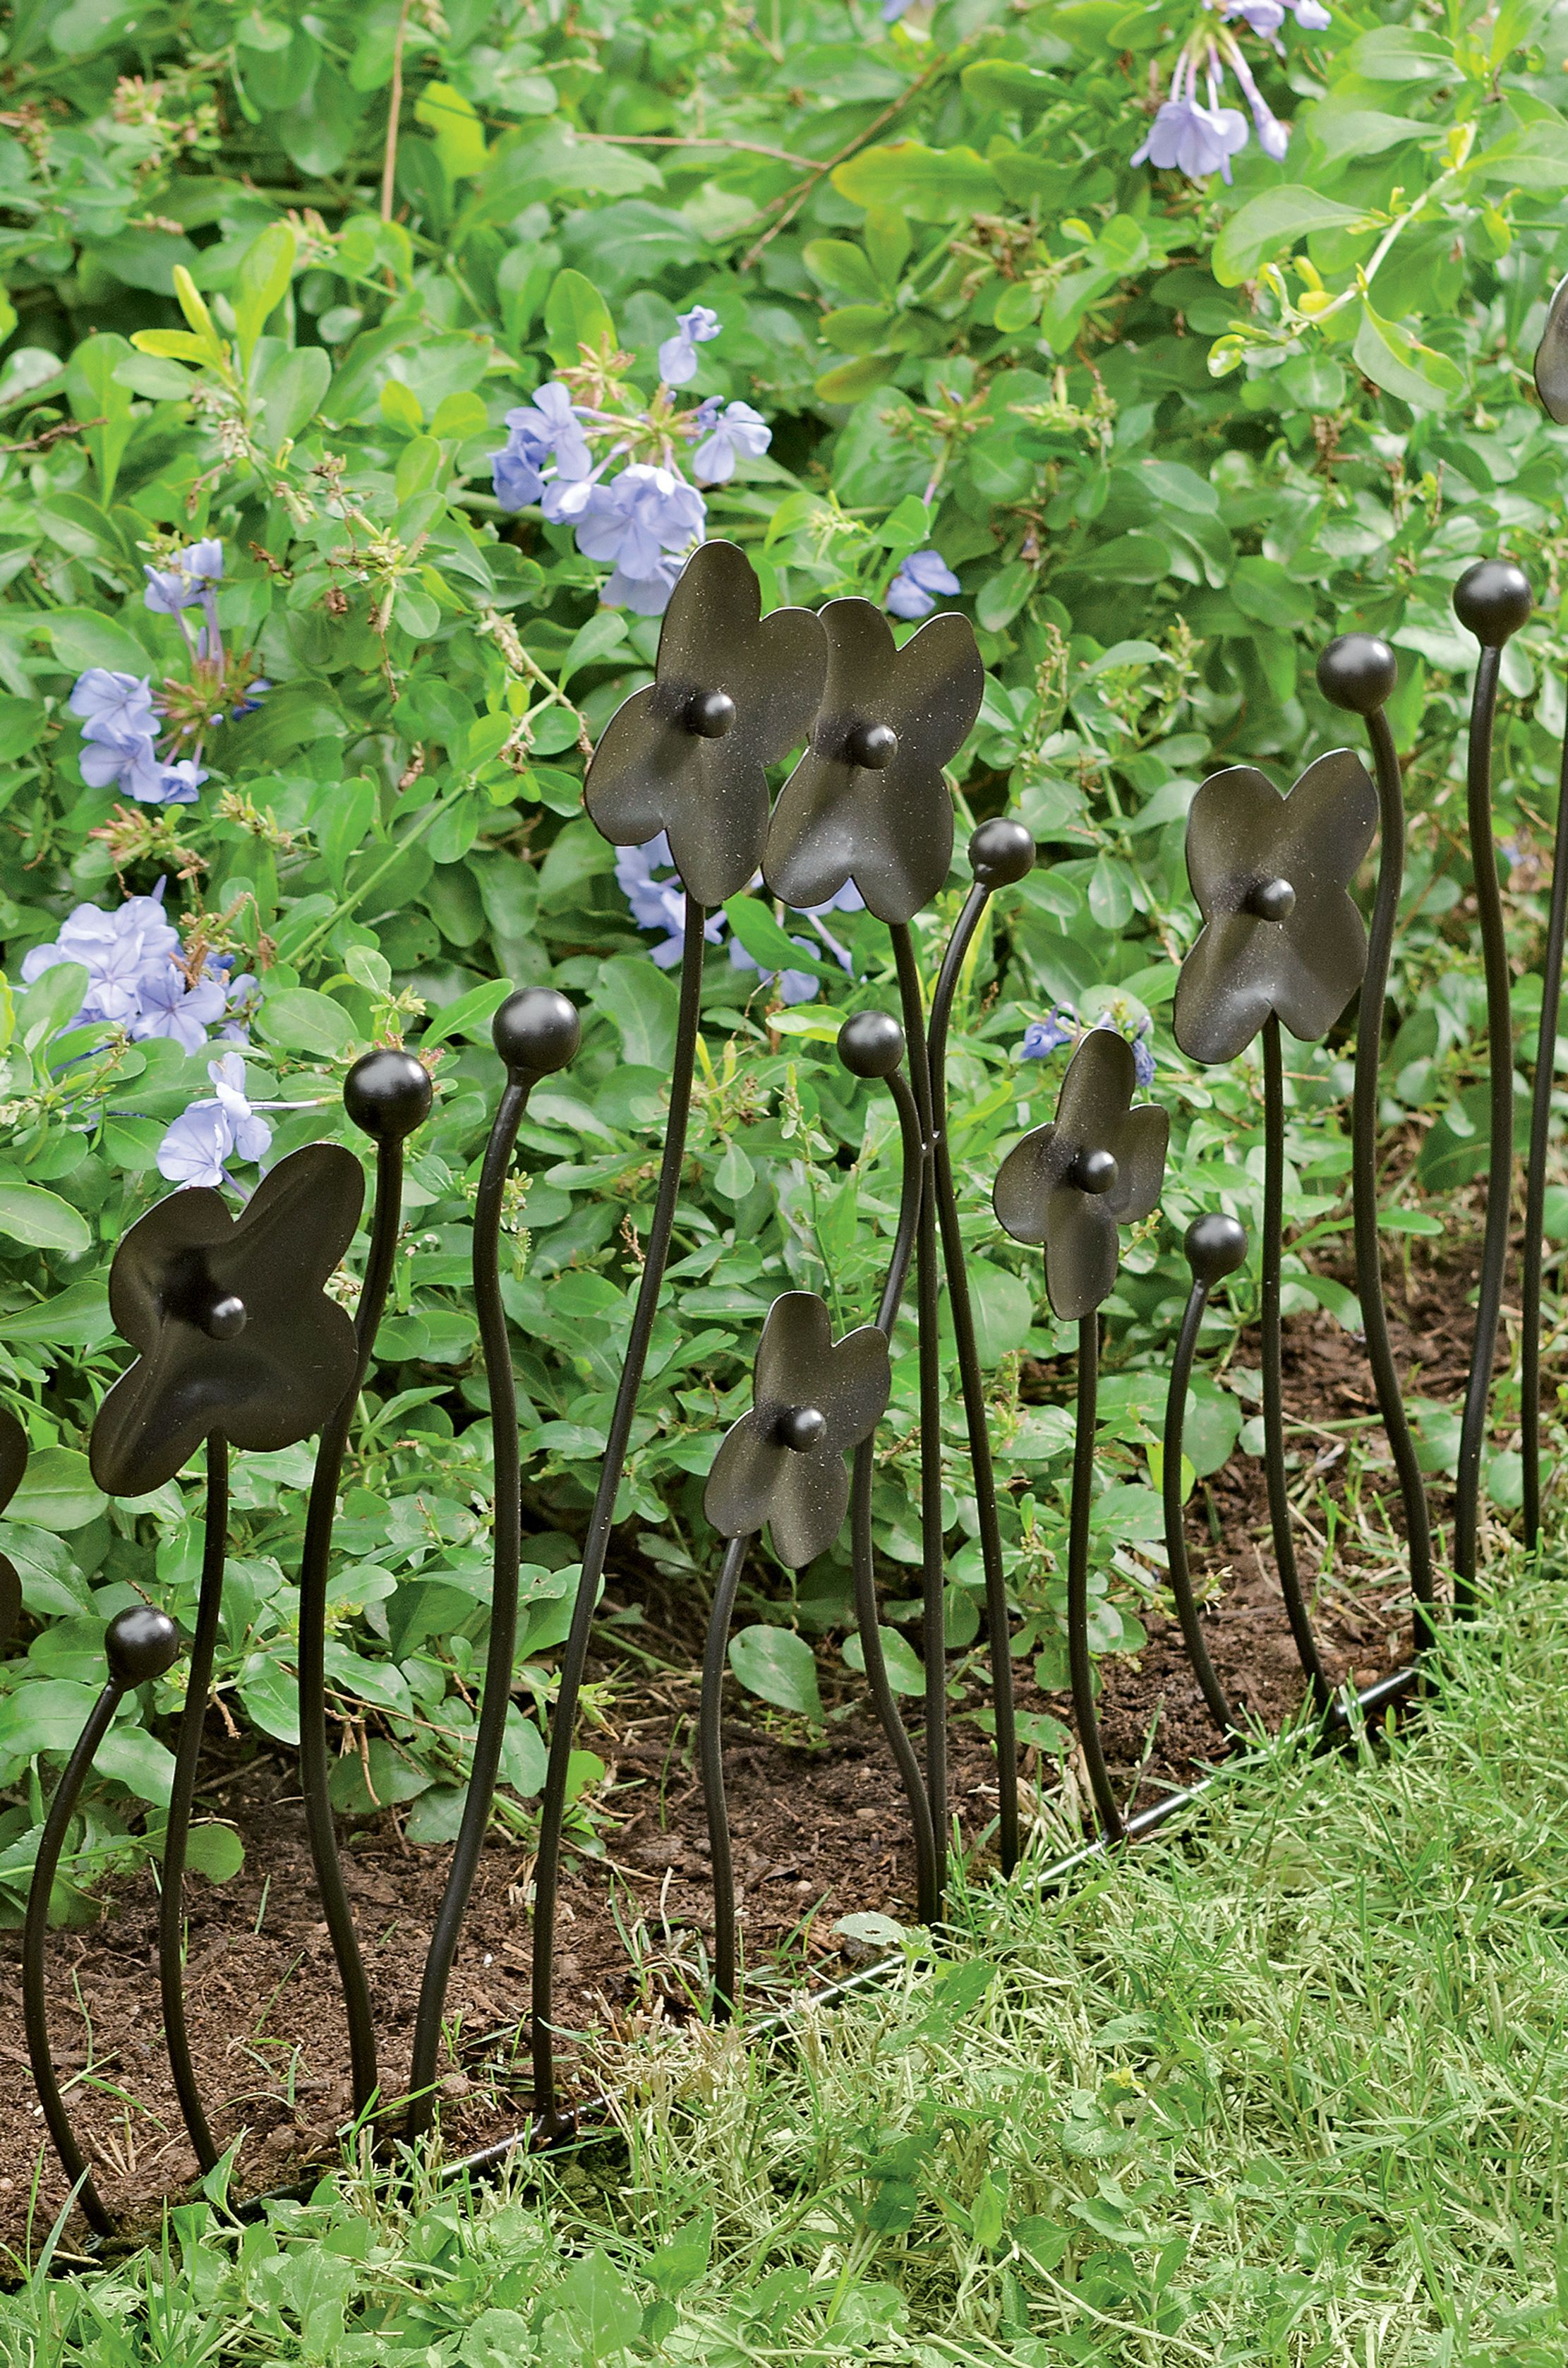 Garden Border Fencing Decorative Edging with Flowers